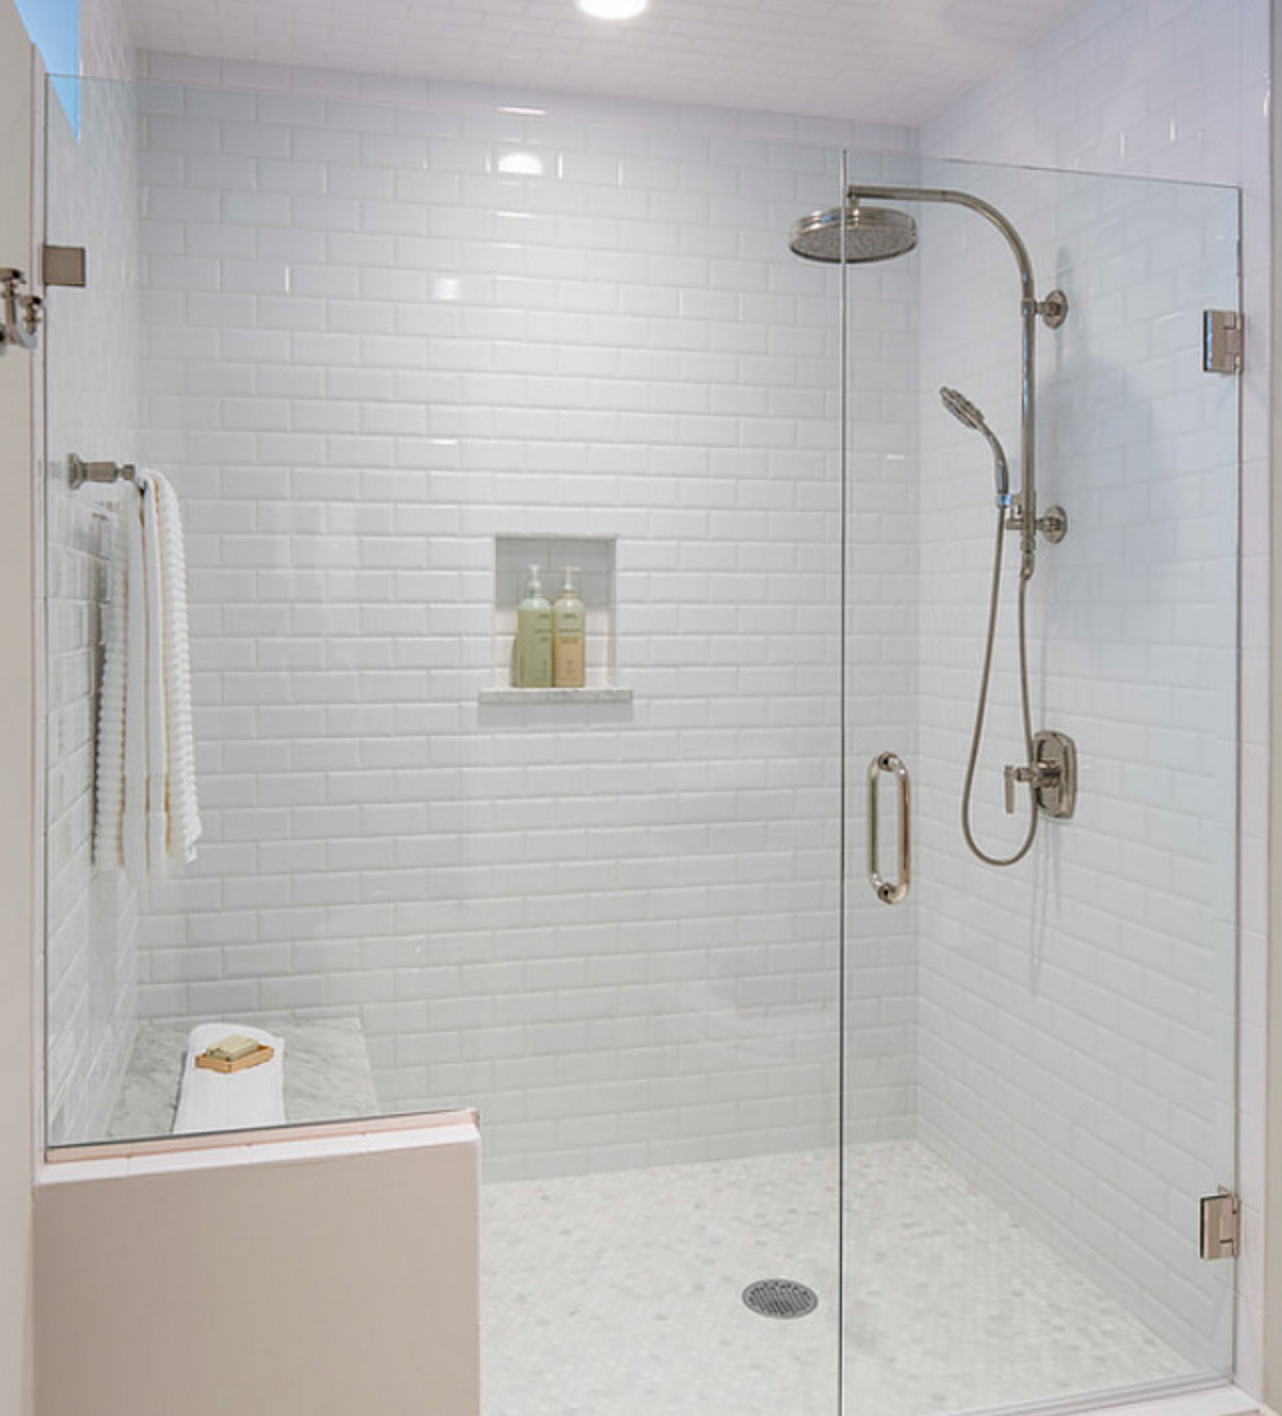 3x6 White Glossy Subway Tiles With 2x2 Carrera Porcelain Tiles On